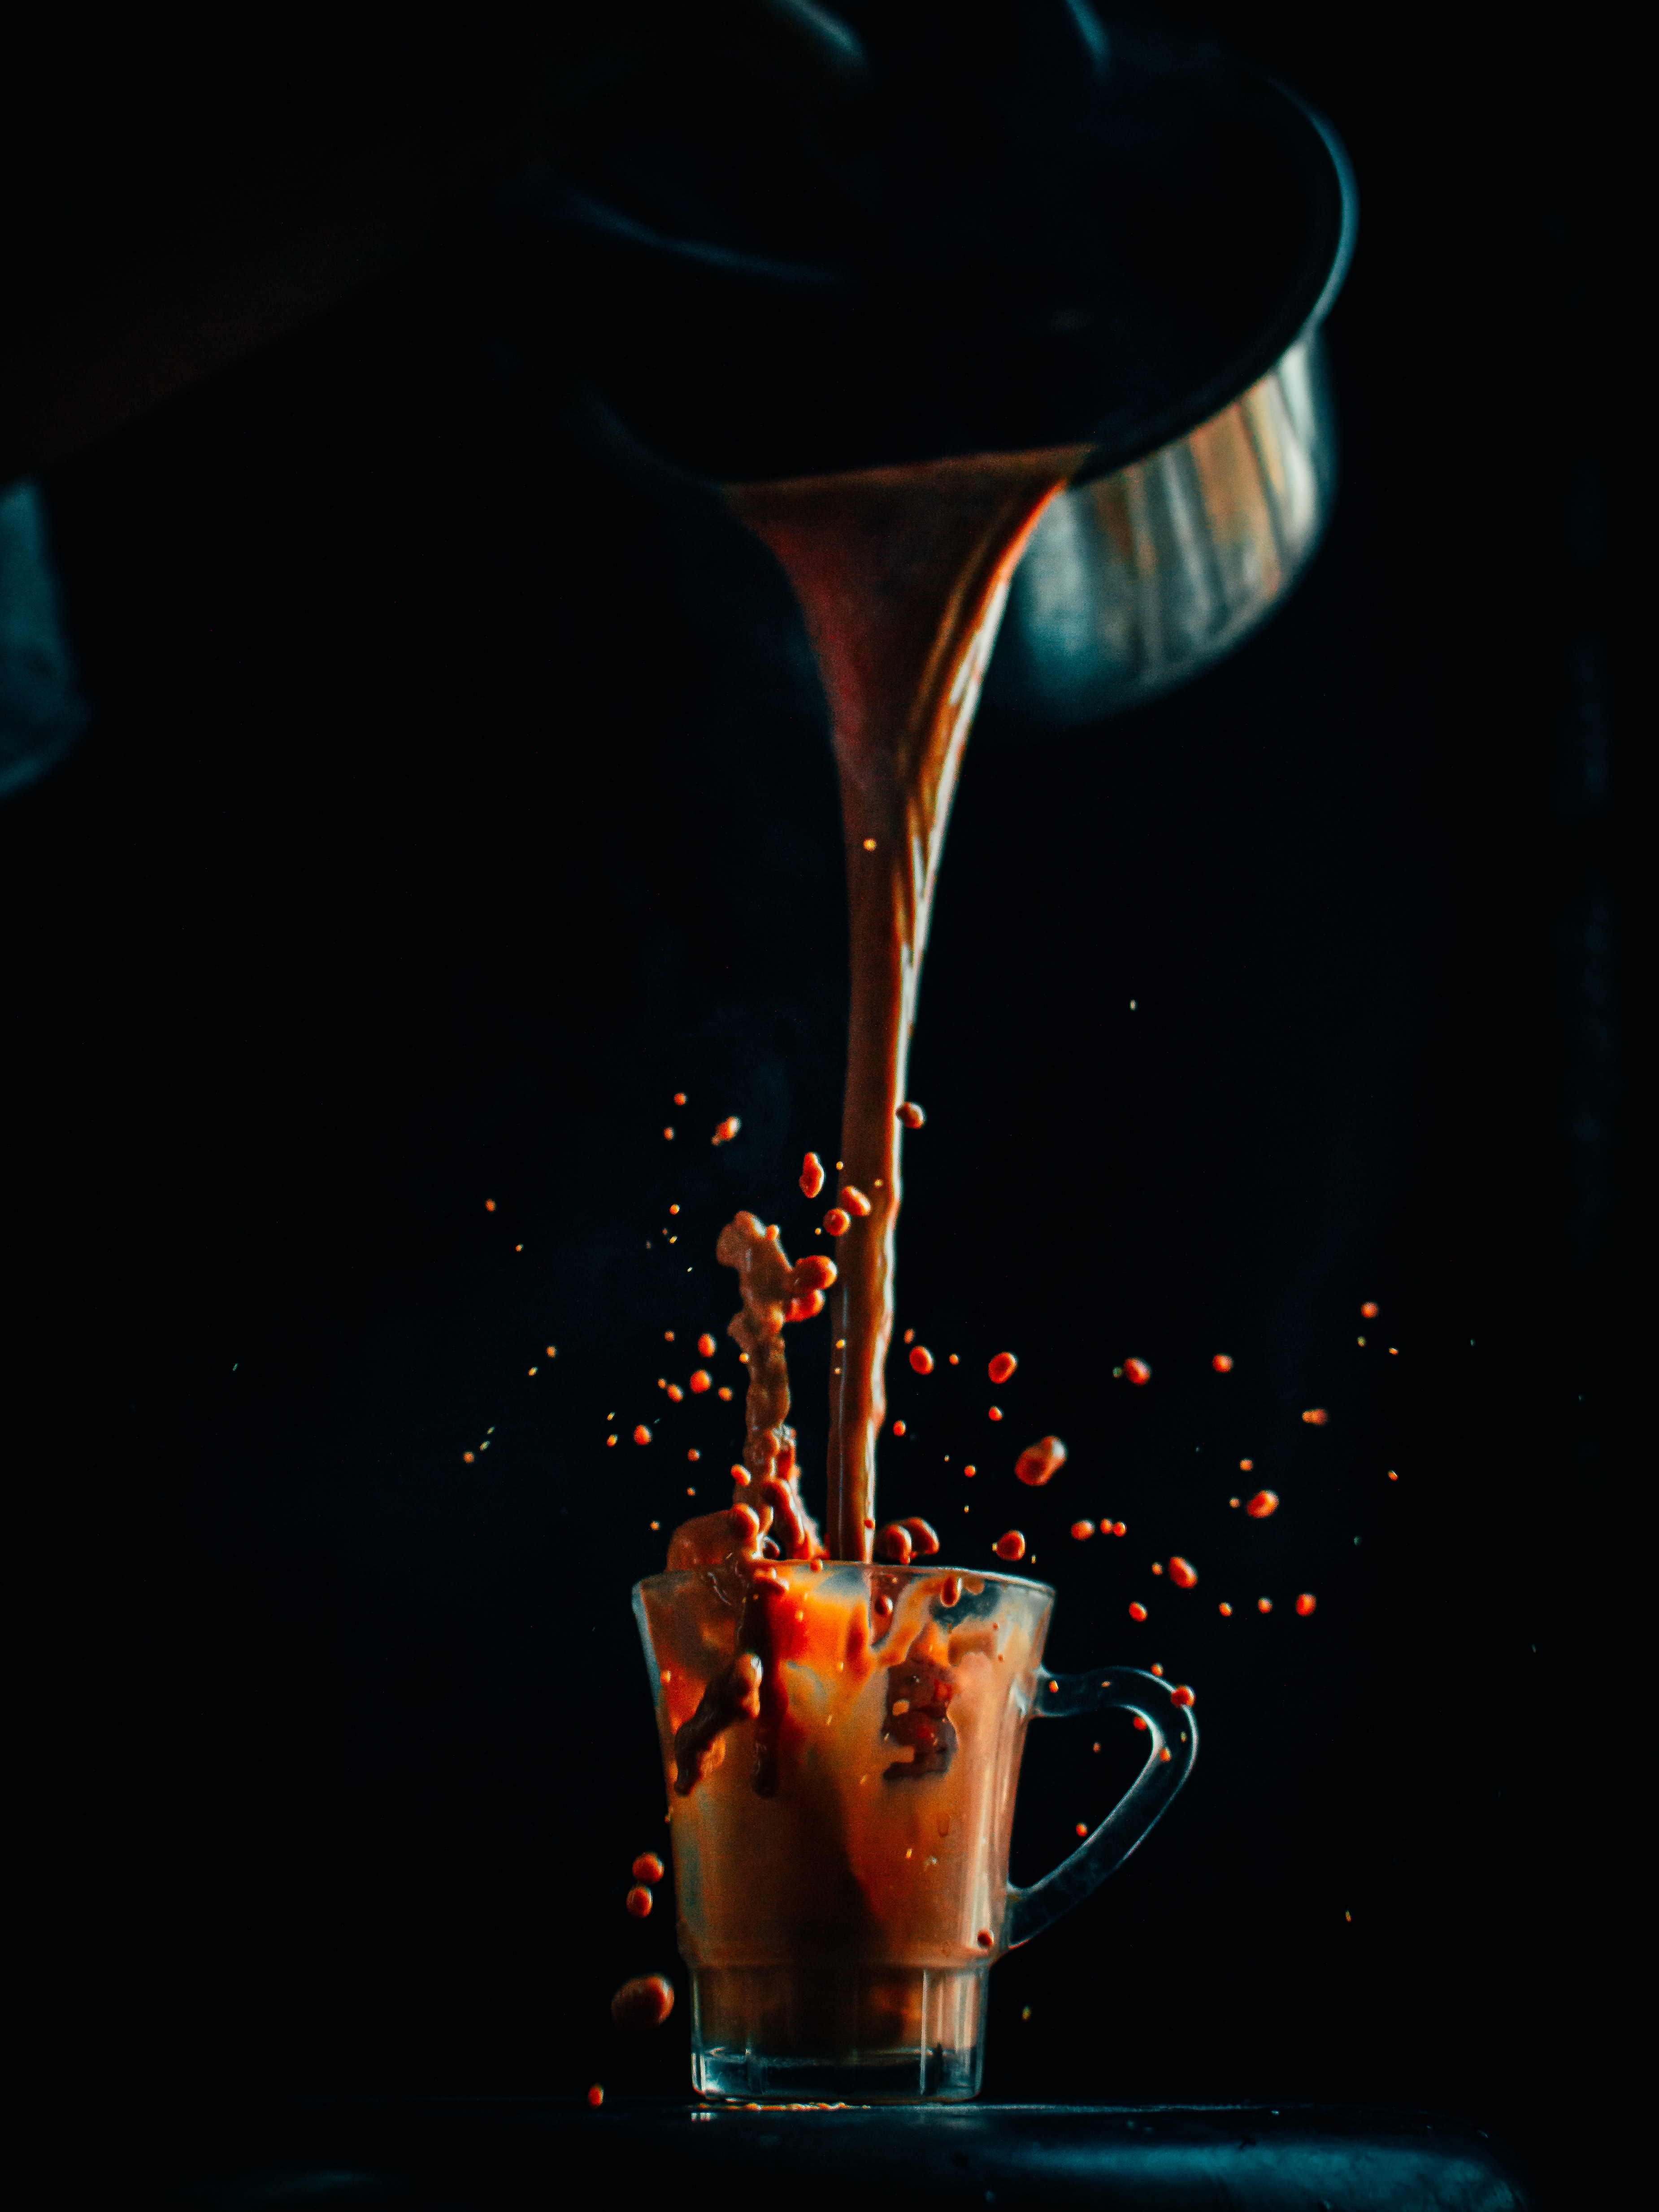 141146 download wallpaper Food, Cup, Coffee, Spray, Drops, Drink, Beverage screensavers and pictures for free